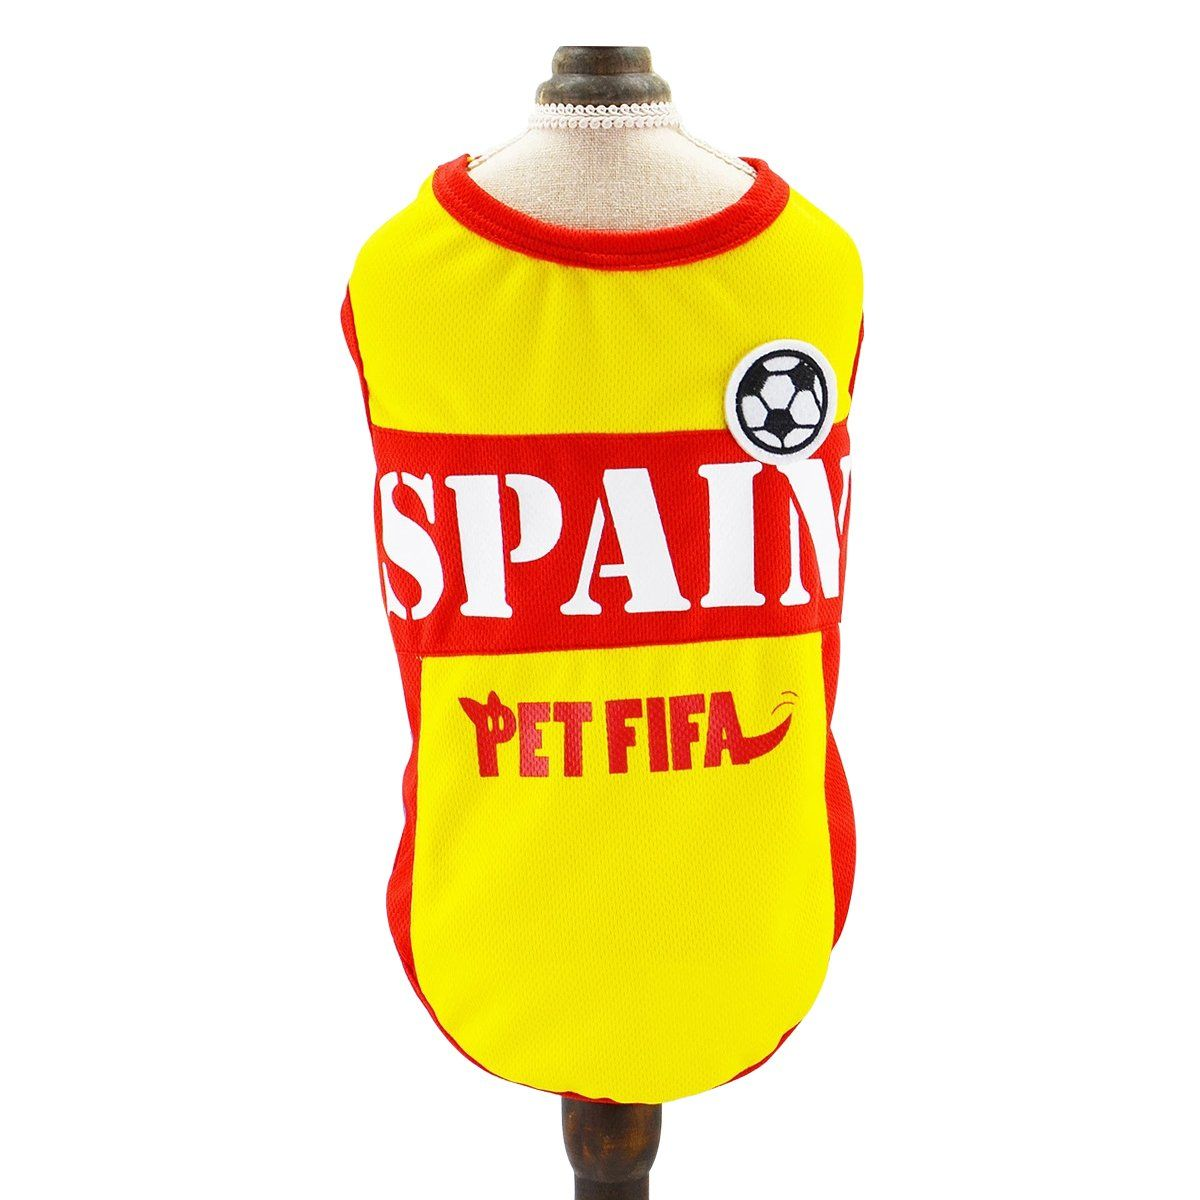 3aac89e0a Besmall Dog Tshirt Costume Sport Jersey Pet National Flag Football Soccer  World Cup FIFA Spain XS    You could obtain even more information by  clicking on ...